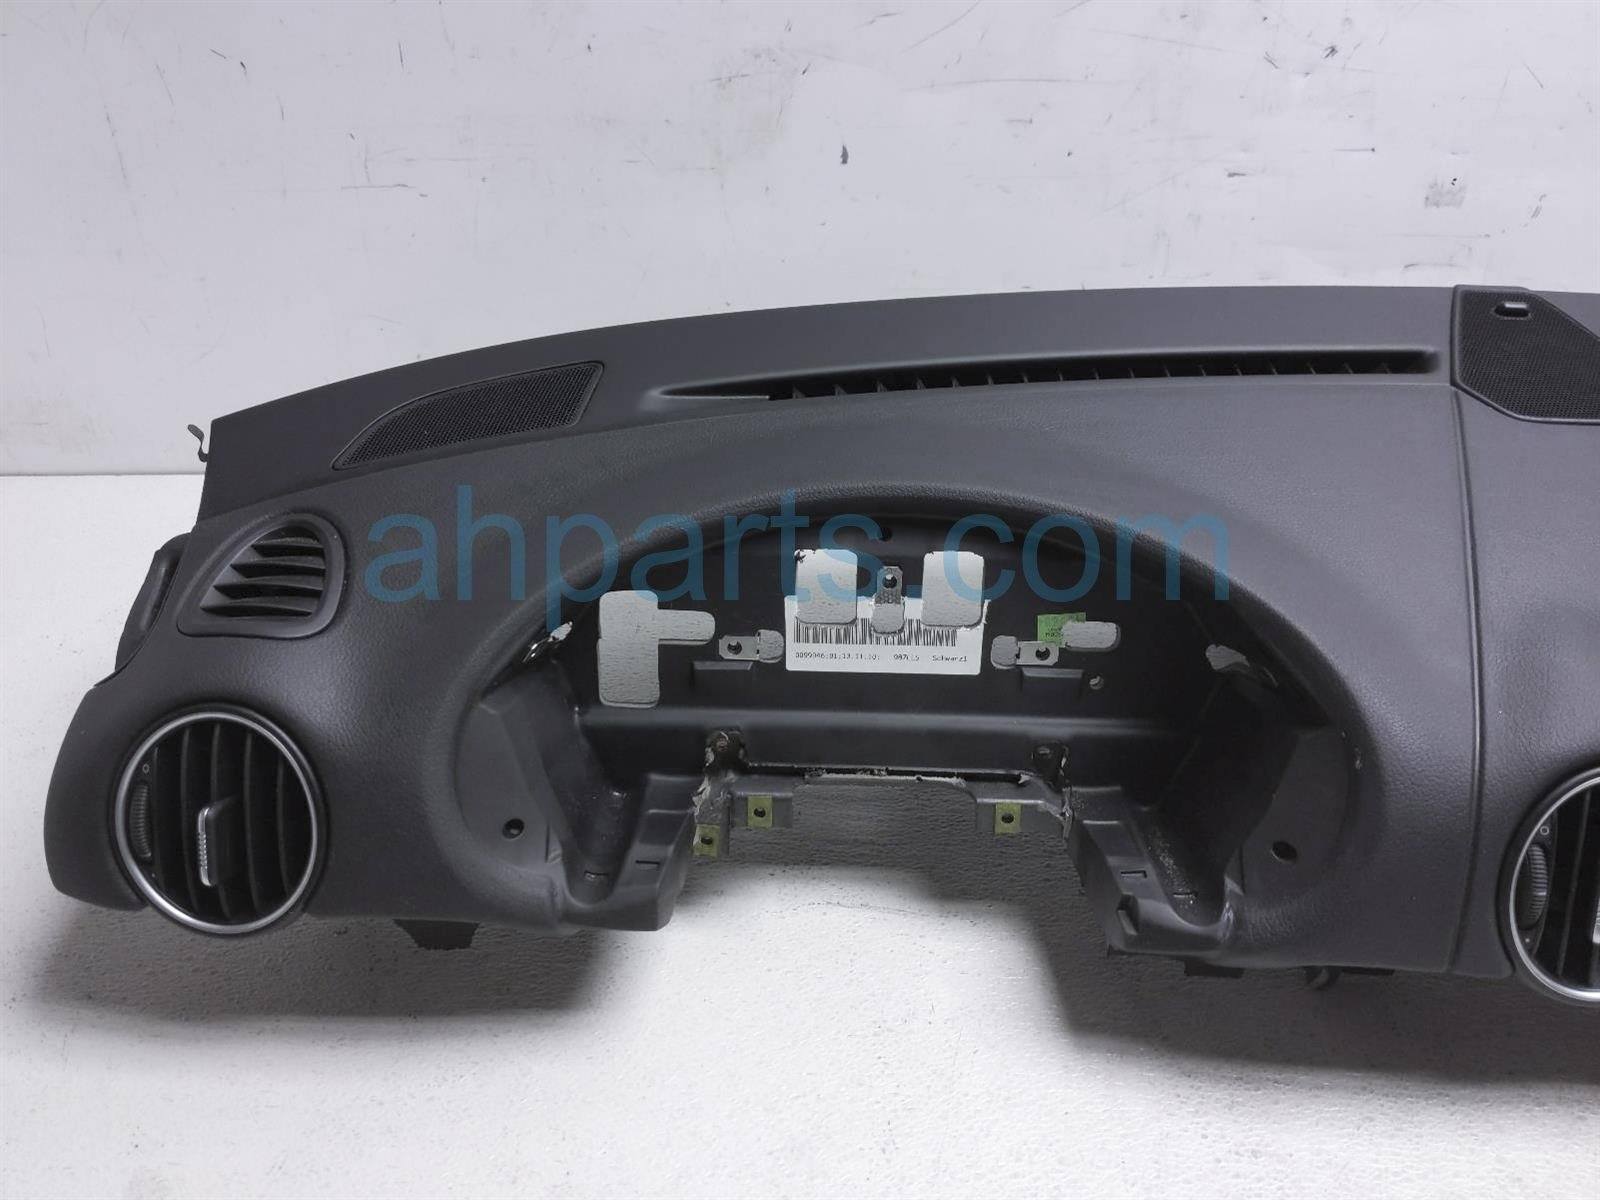 2011 Porsche Cayman Dashboard   Black 987 552 101 21 9L4 Replacement